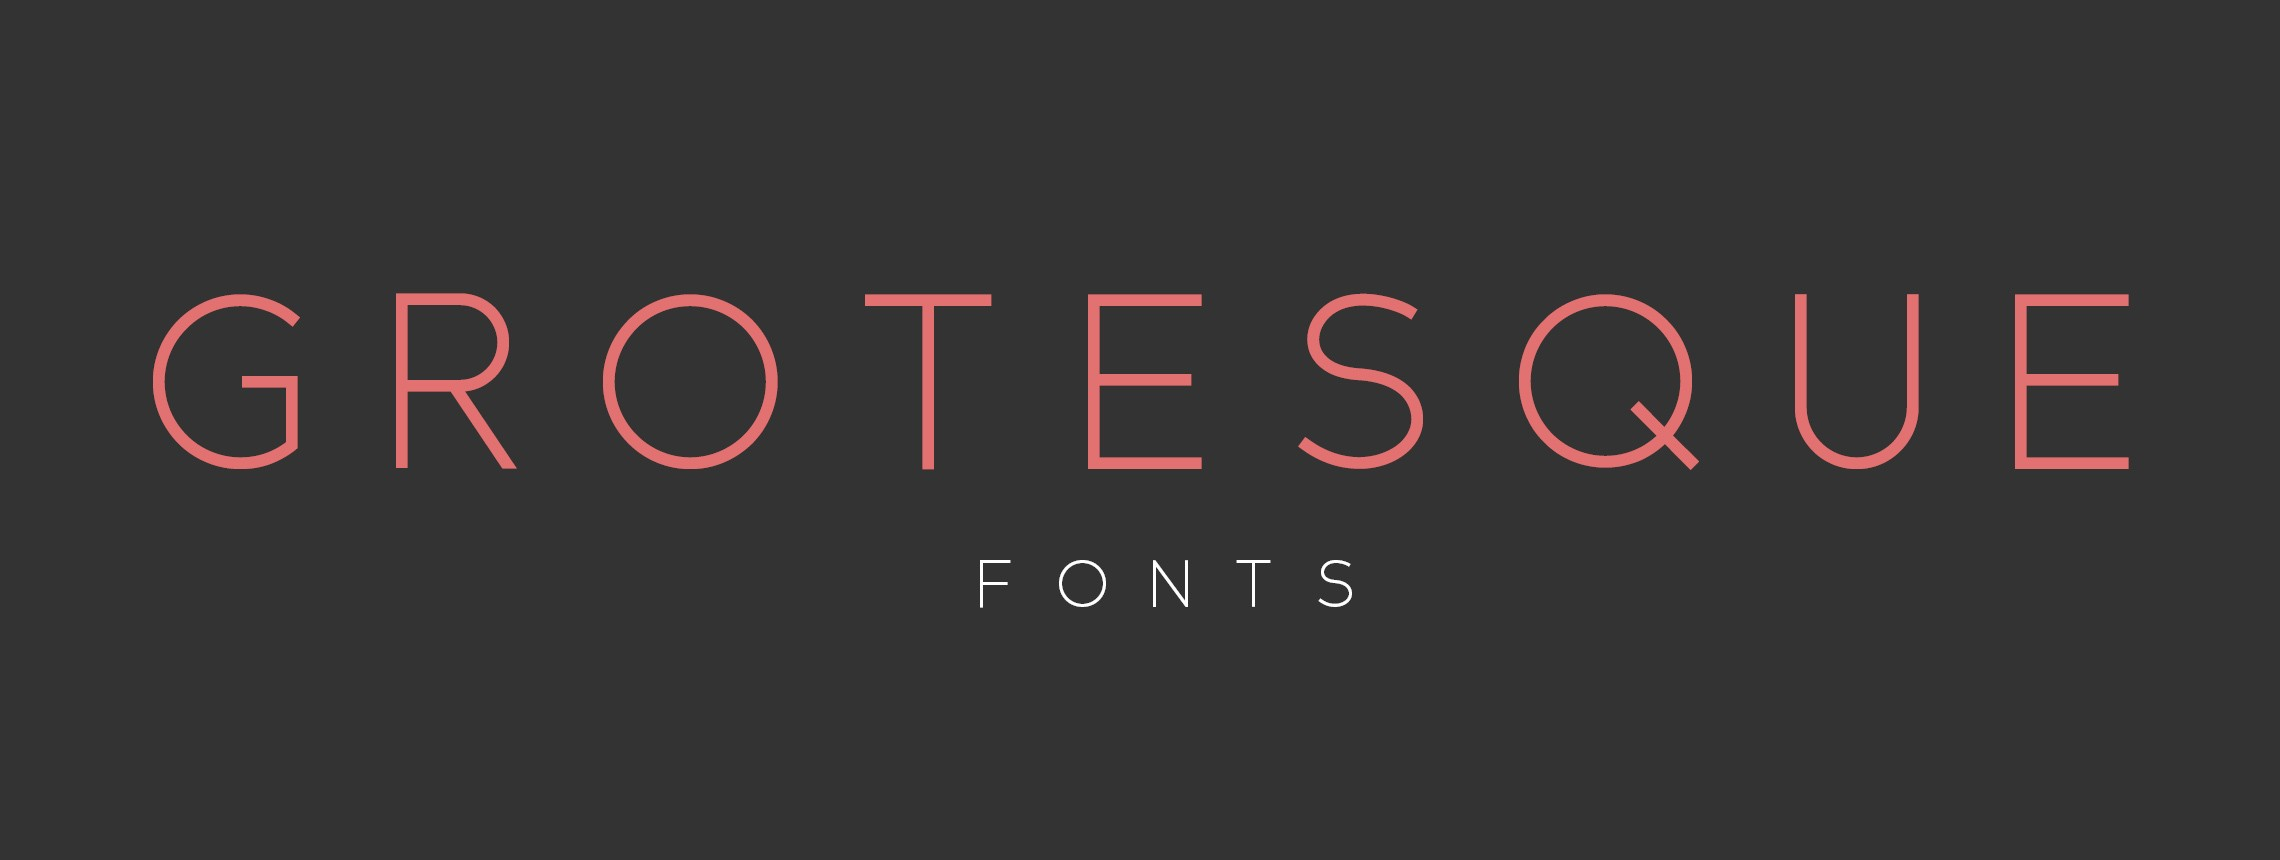 17 Formal Gothic and Grotesque Fonts